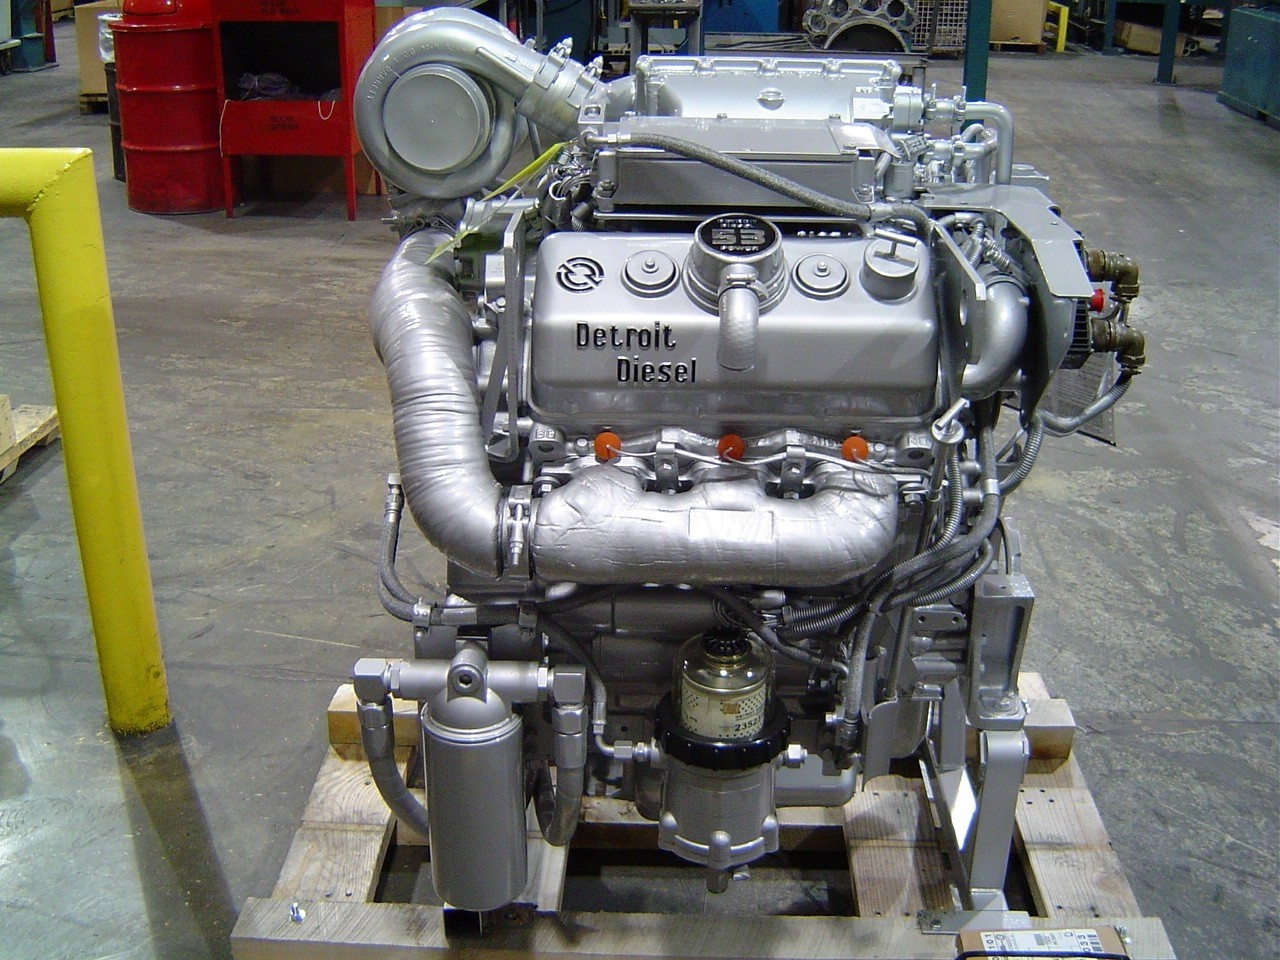 MTU Continues Detroit Diesel 2-Cycle Legacy With New Foreign